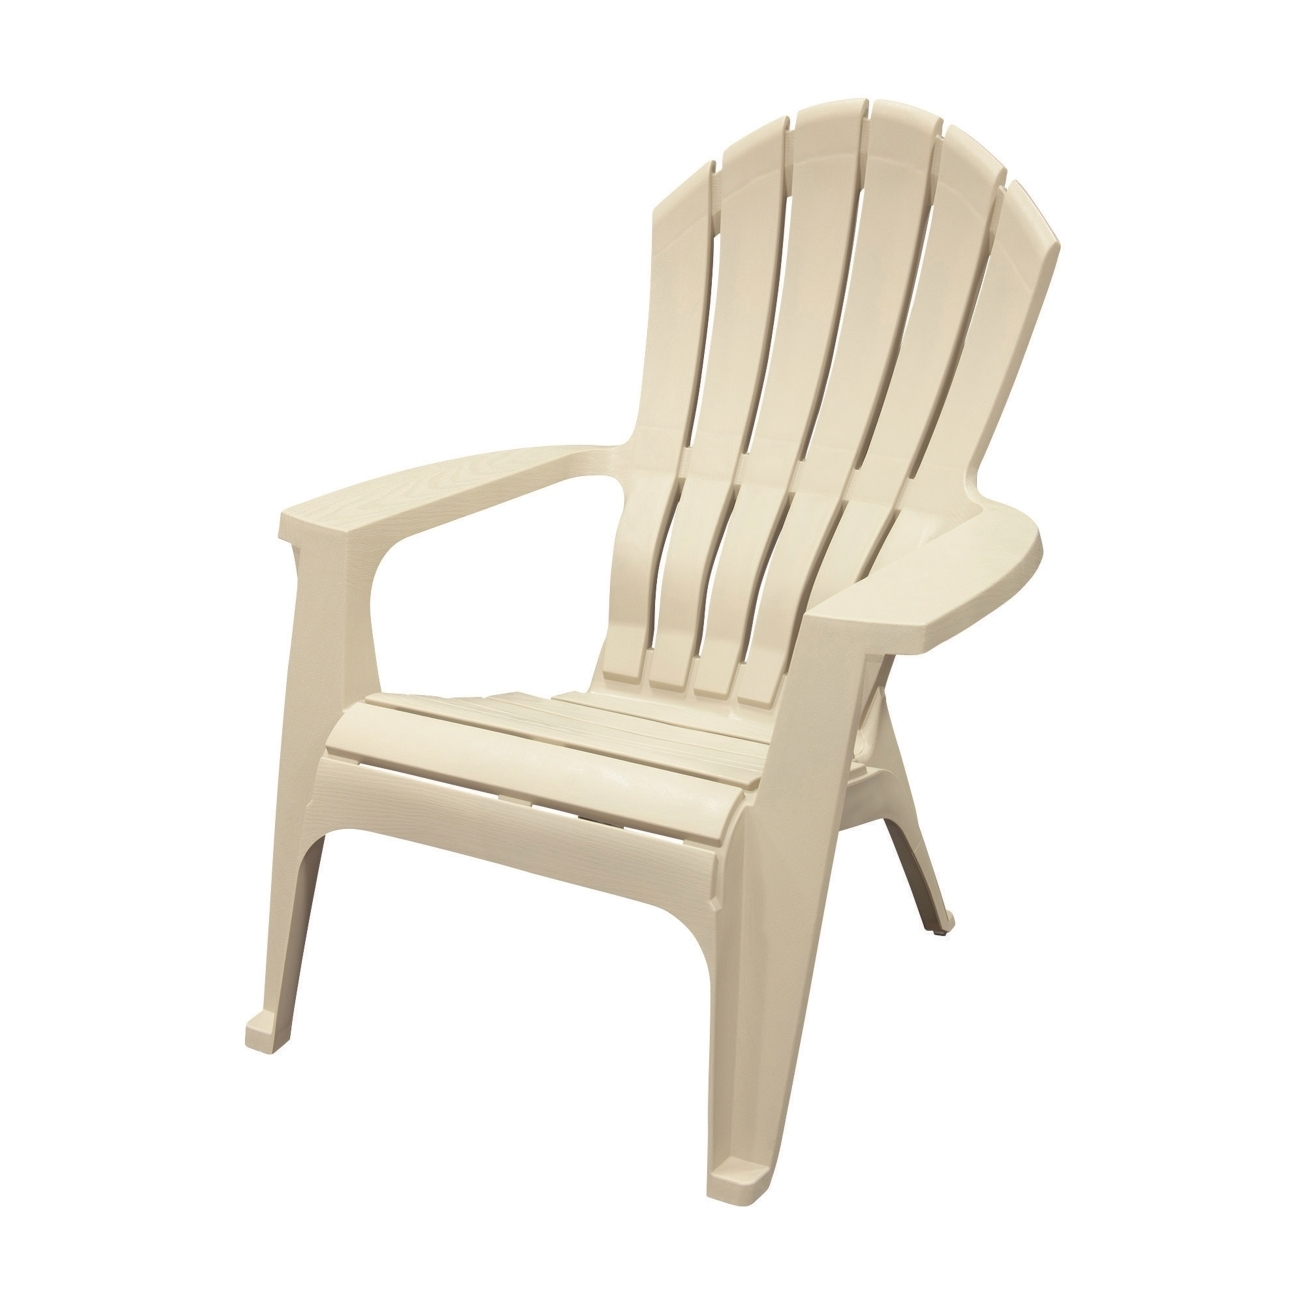 Rocking Chairs At Kroger With Regard To Most Recent Worthy Plastic Adirondack Chairs Kroger F83X On Simple Home Interior (View 10 of 15)